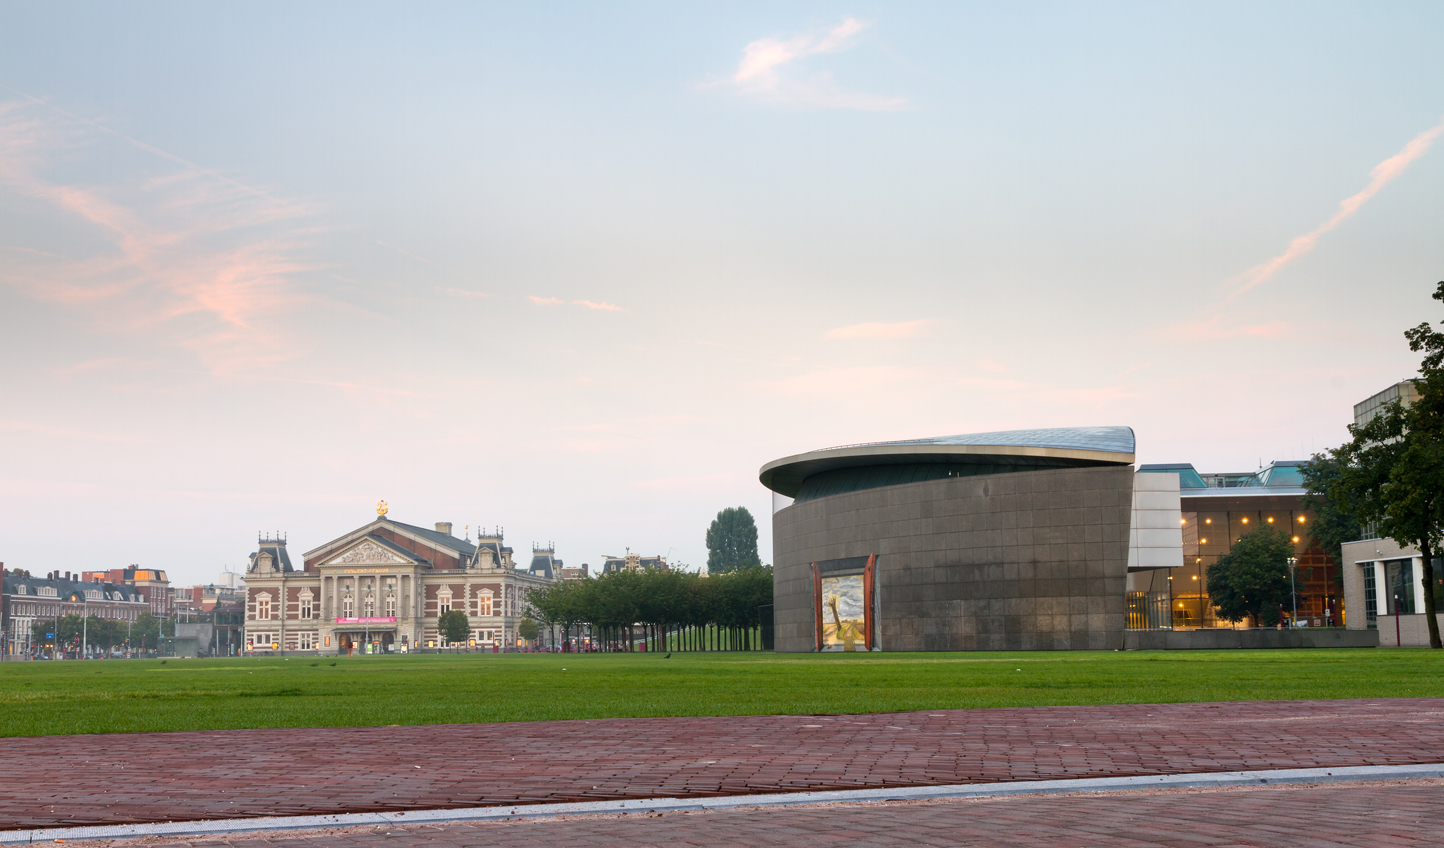 Art is never far away in Amsterdam - especially at the Van Gogh Museum